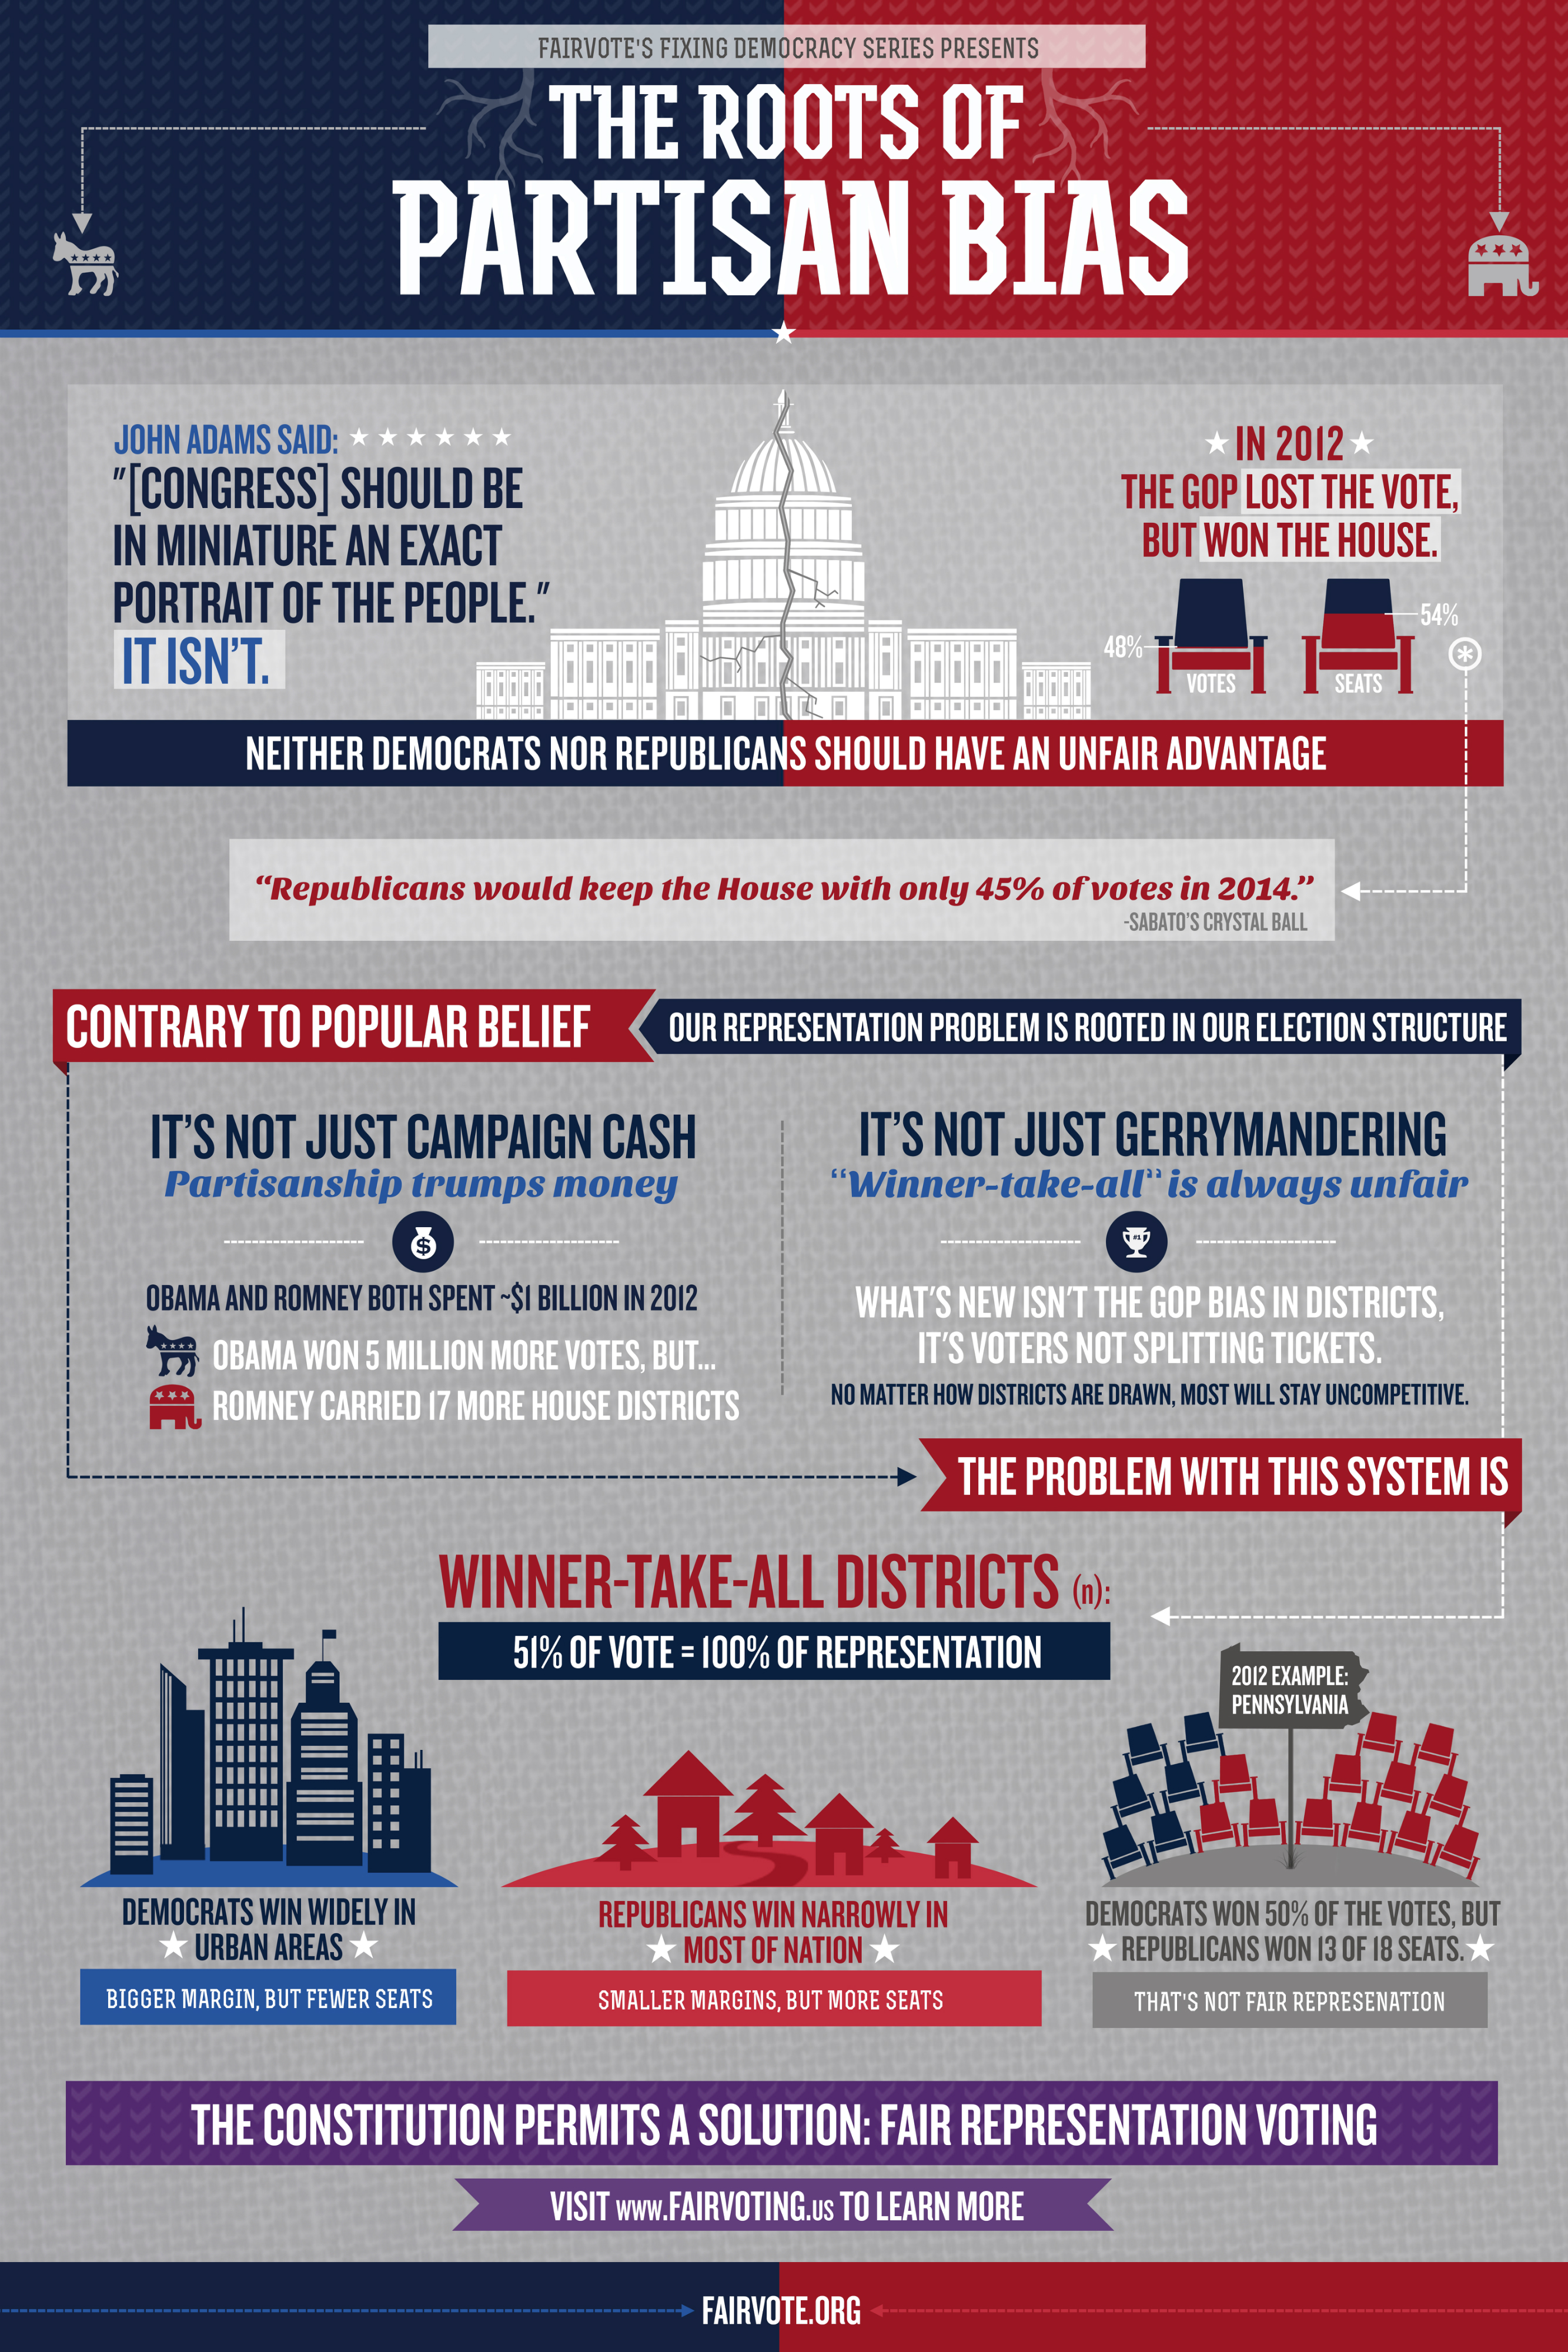 Infographic Describing Problems of Partisan Bias in Districting and Elections